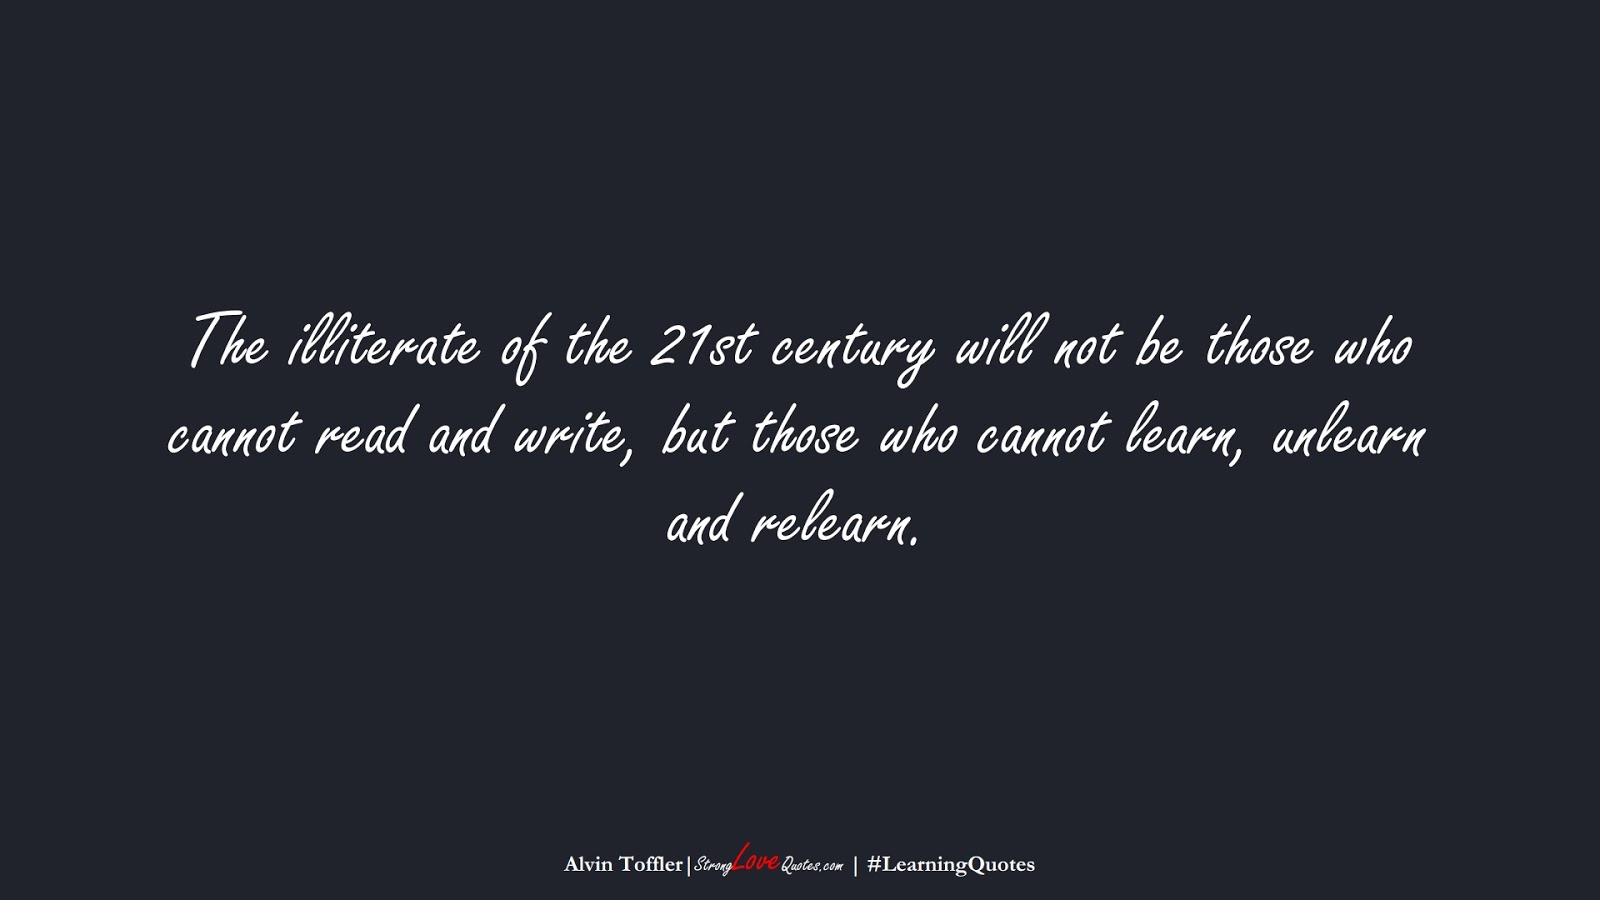 The illiterate of the 21st century will not be those who cannot read and write, but those who cannot learn, unlearn and relearn. (Alvin Toffler);  #LearningQuotes